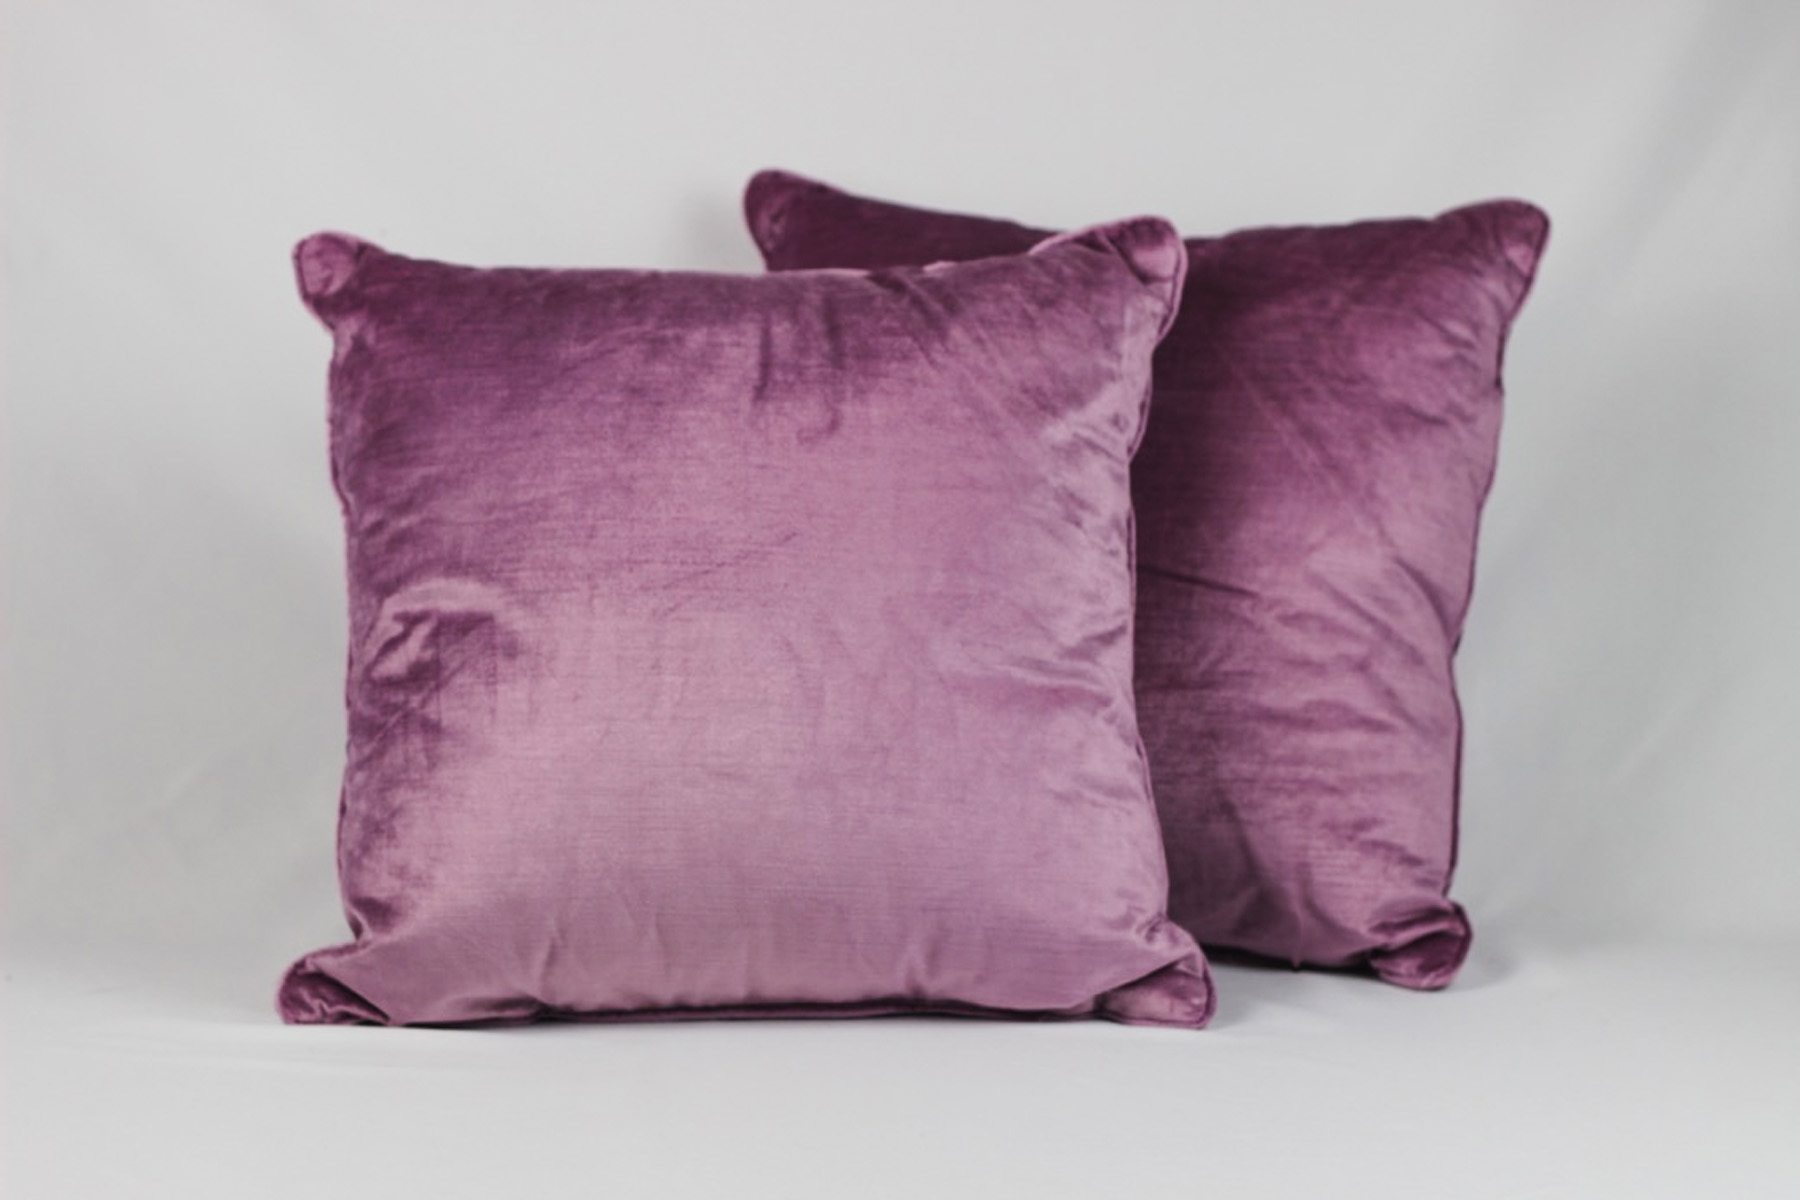 Orchid Velvet Pillows - Scavenged Vintage Rentals.jpg